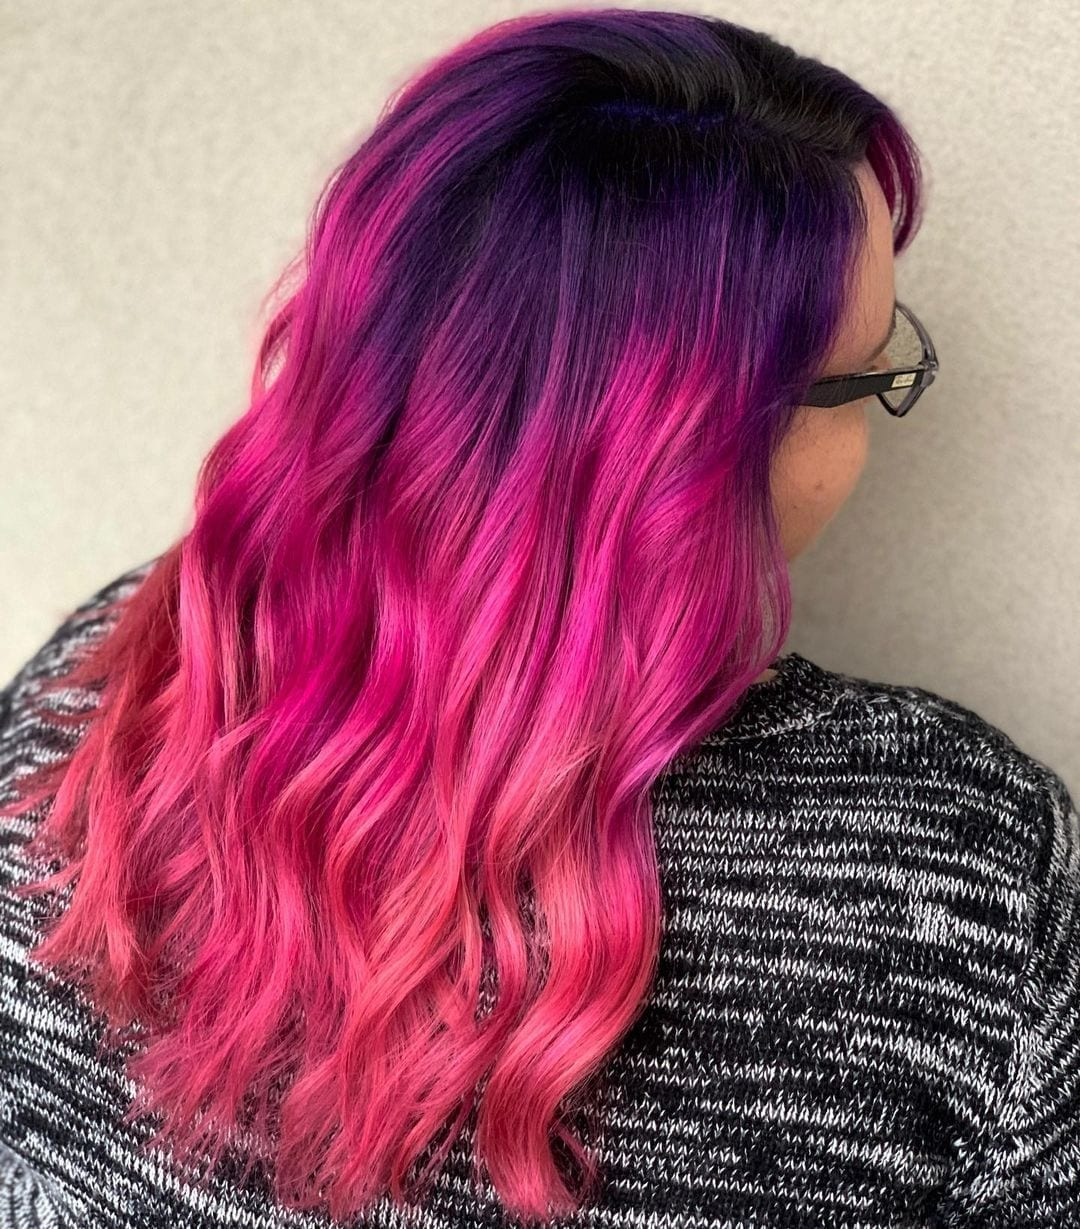 Woman with unprofessional galaxy hair that is bright pink in a heathered sweater looks to the right